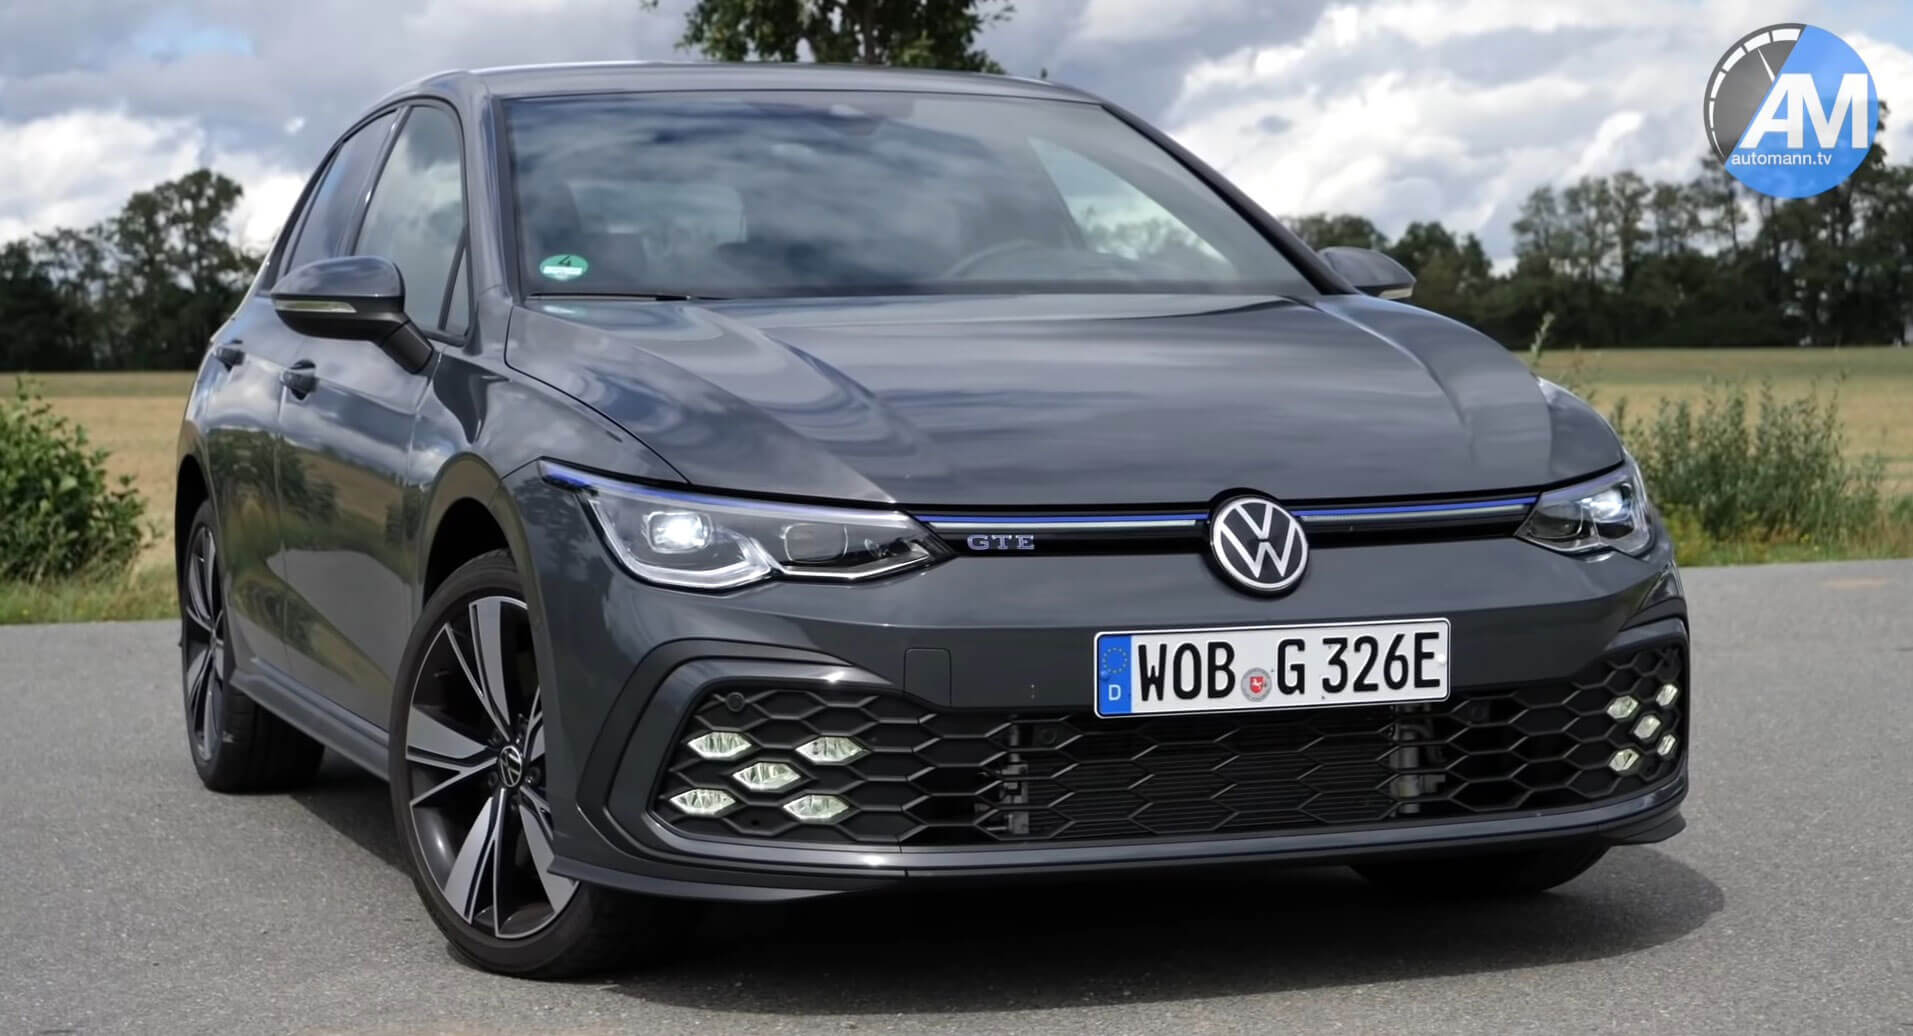 Jump Inside The 2020 Vw Golf Gte And Experience The Plug In Hybrid Hot Hatch First Hand Carscoops